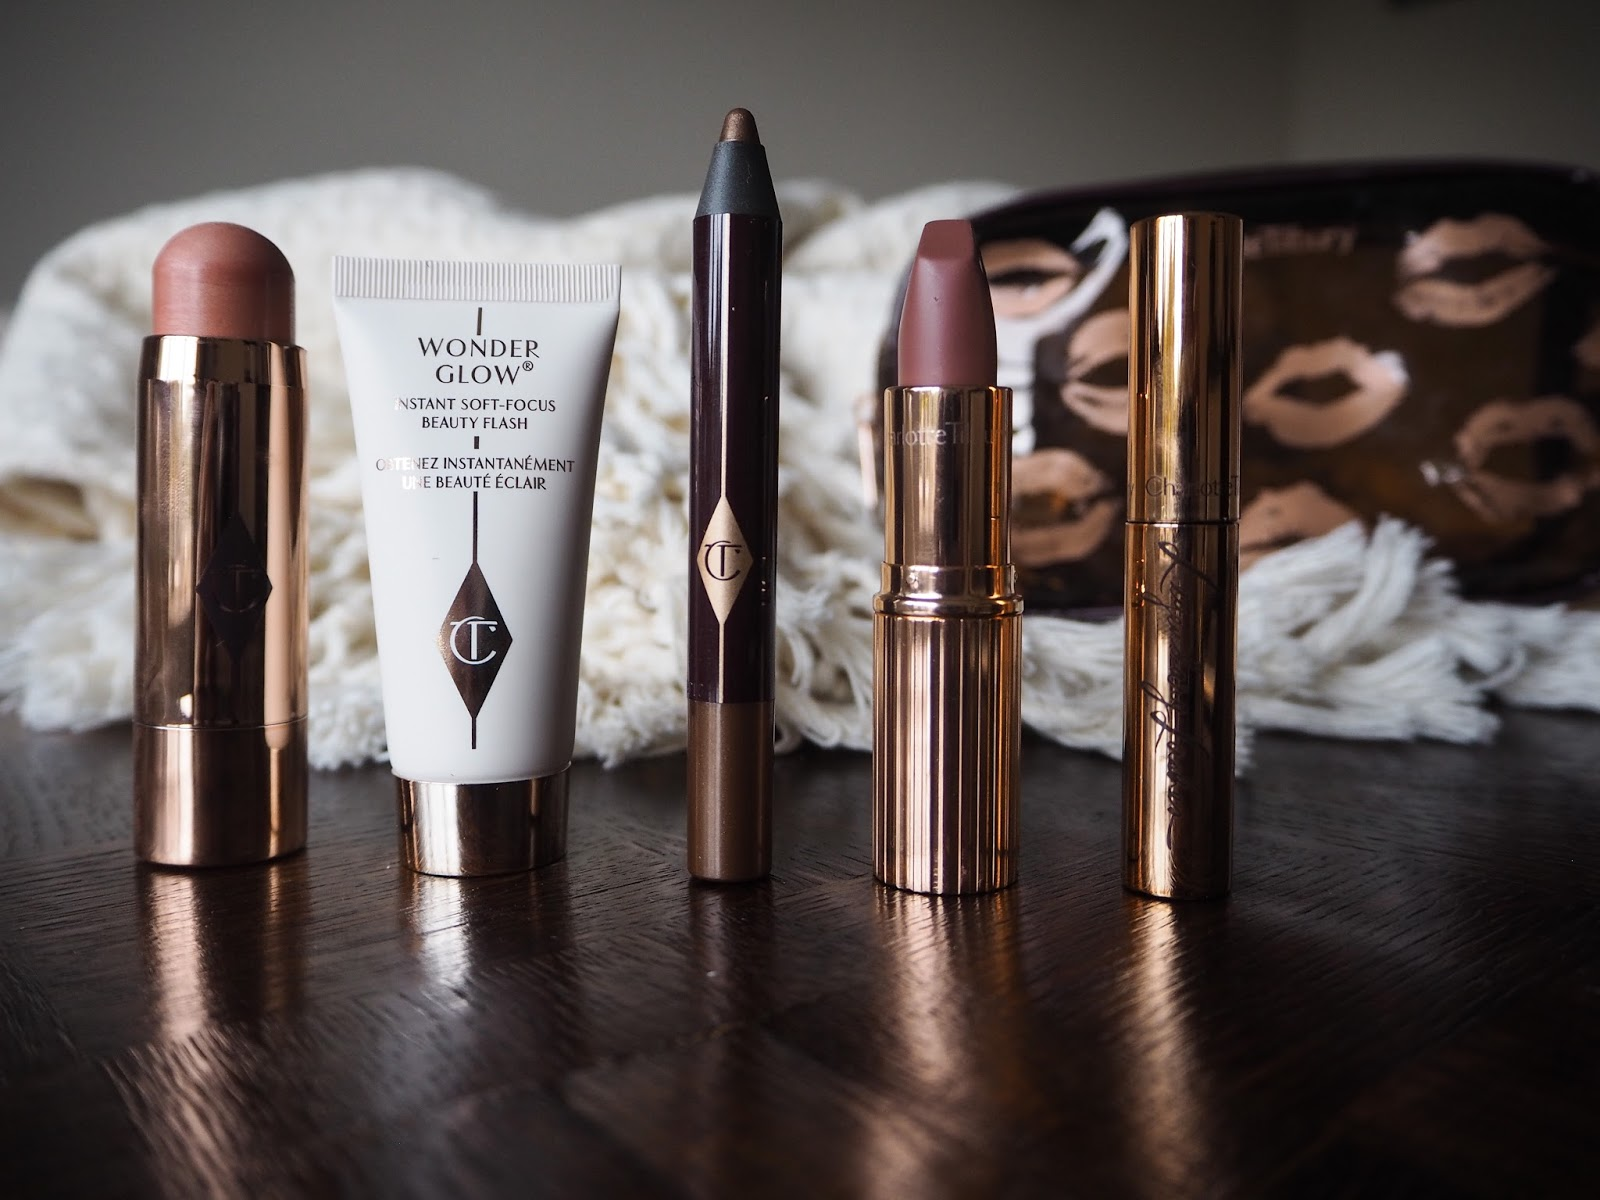 Charlotte Tilbury 5 Minute Makeup Look Quick 'N' Easy Natural Glowing Look Set Review